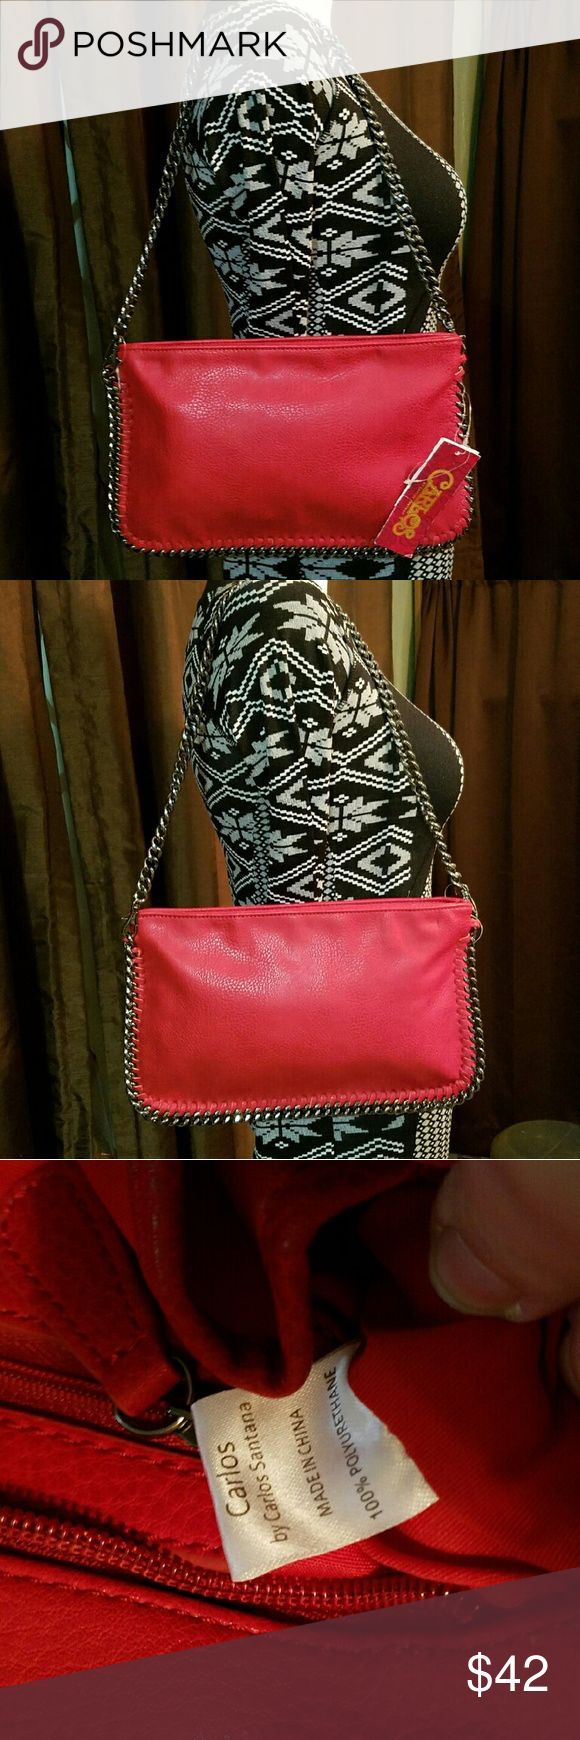 Spotted while shopping on Poshmark: CARLOS SANTANA *nwt* Red Faux Leather & Chains Bag! #poshmark #fashion #shopping #style #Carlos Santana #Handbags